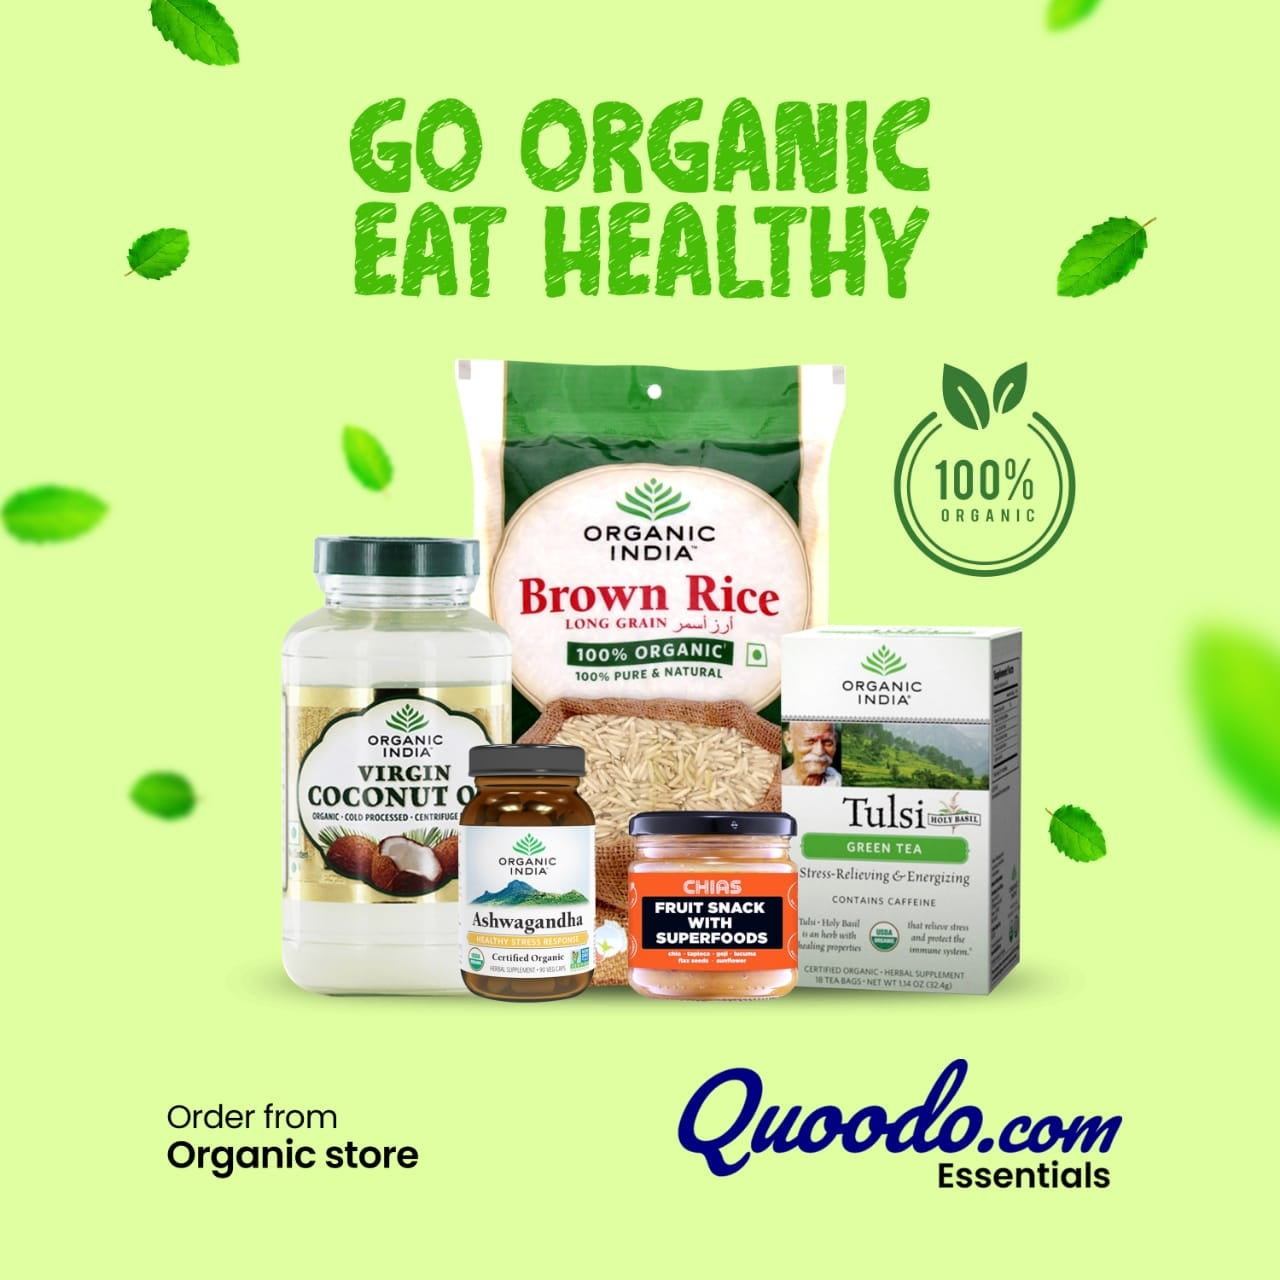 Buy Organic Products Online at Best Prices from Quoodo